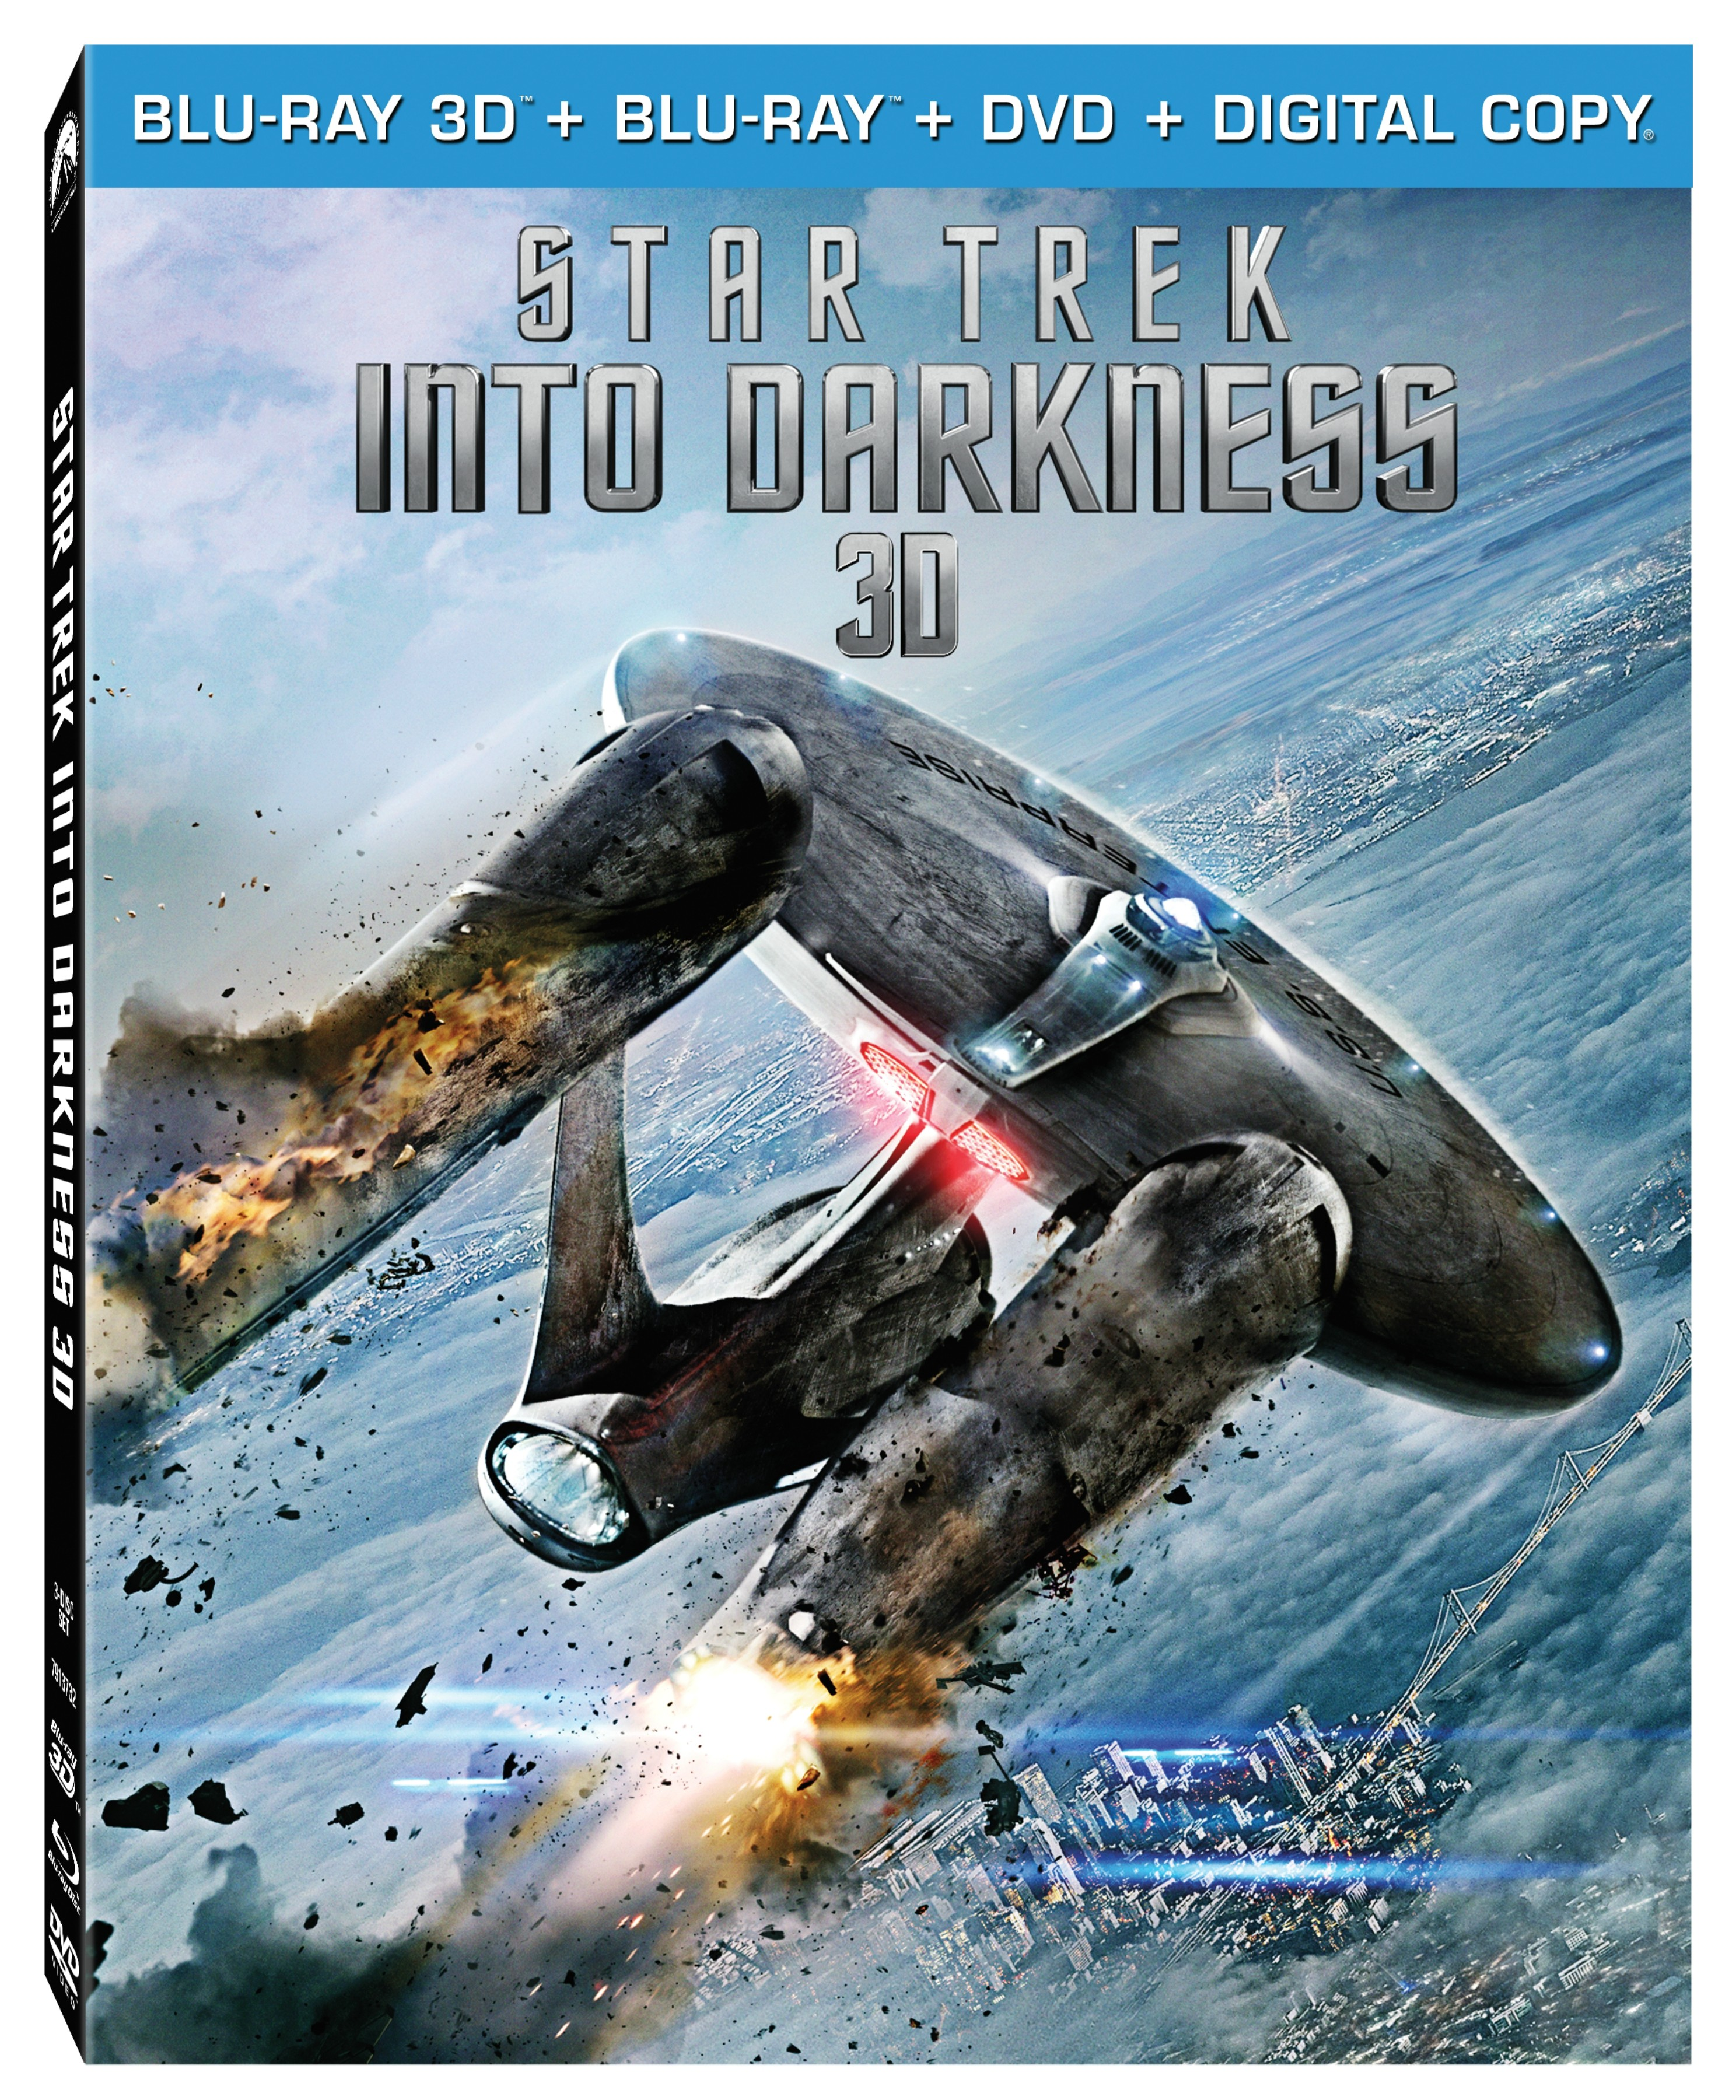 Star Trek Into Darkness Hd Free Torrent Download